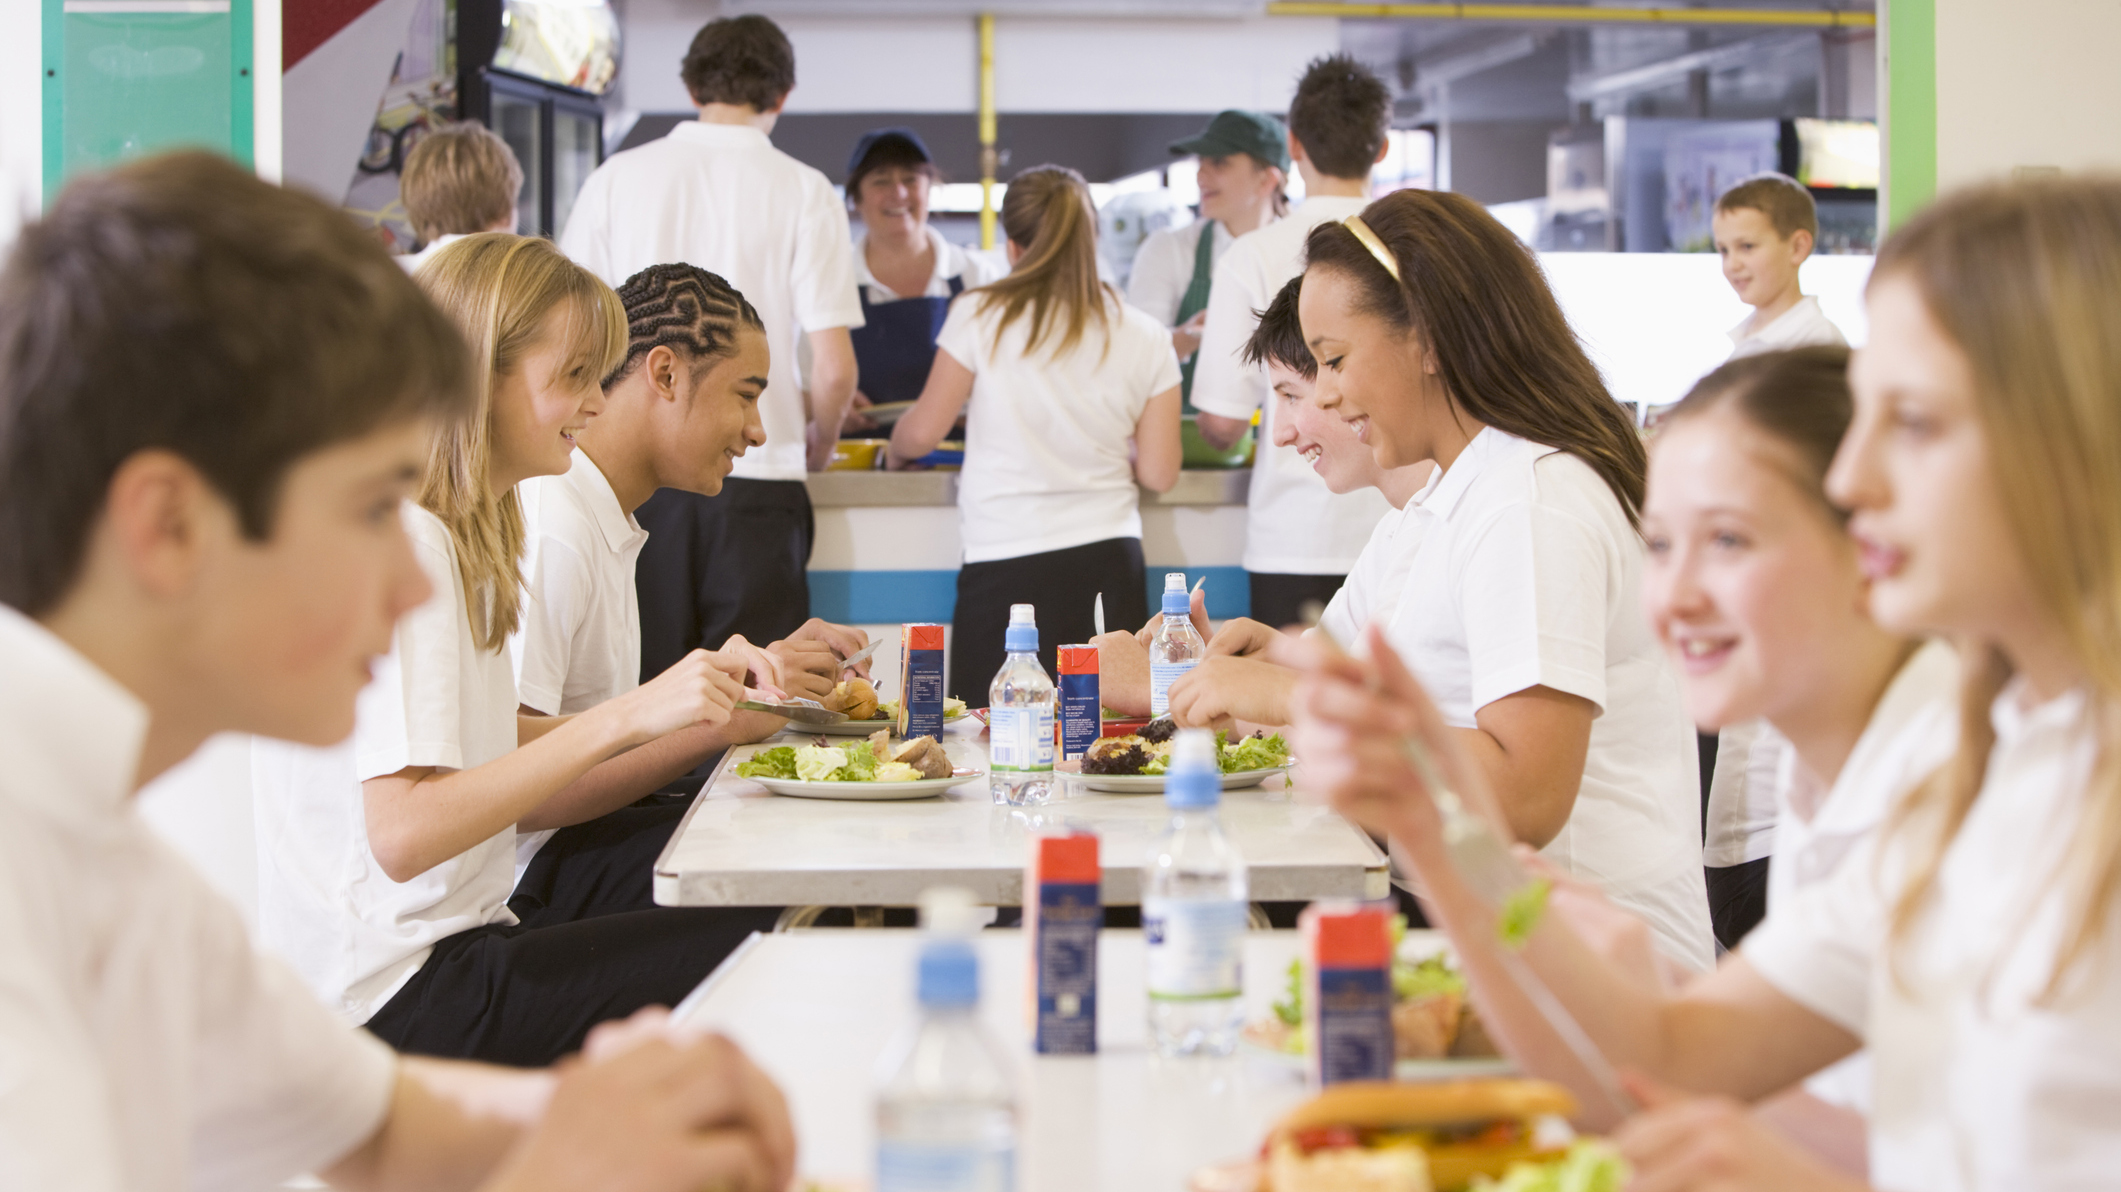 New York City Public Schools Offer Free Lunch For Every Student